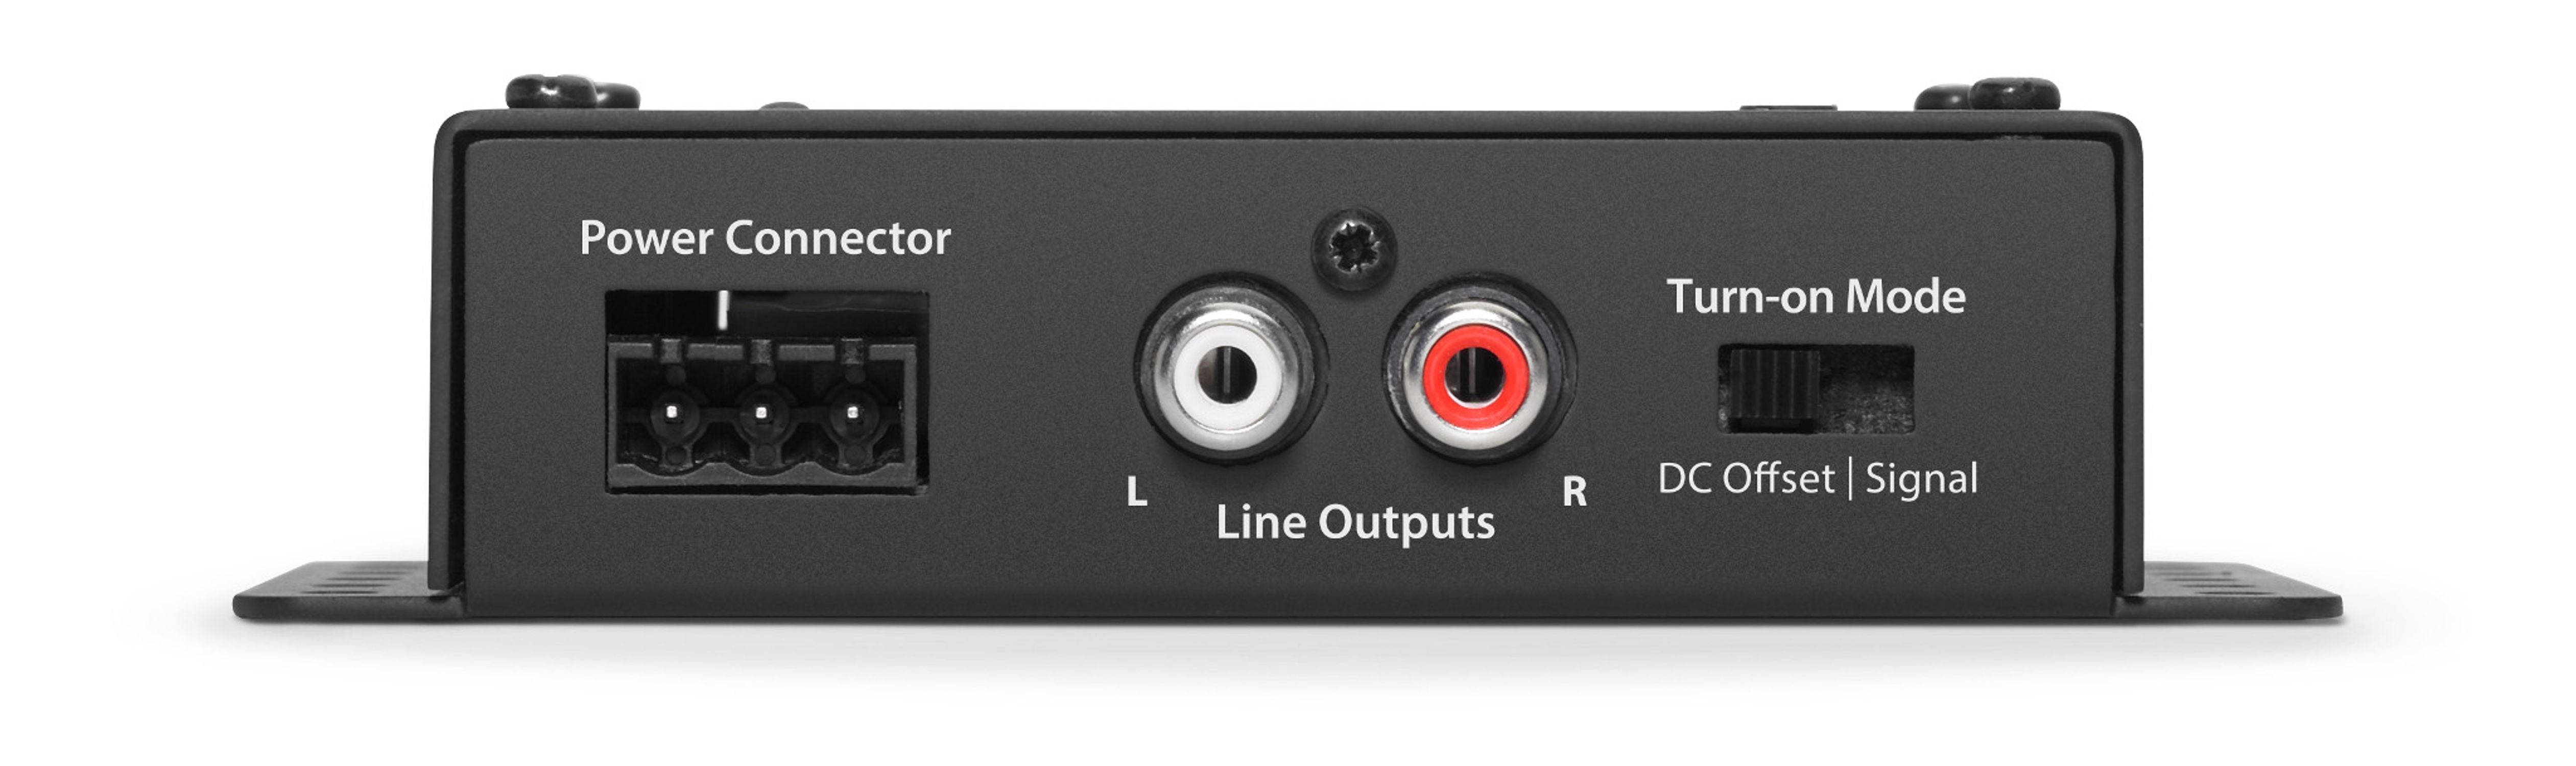 LoC-22 Amplifier Networking Hub Inputs Side